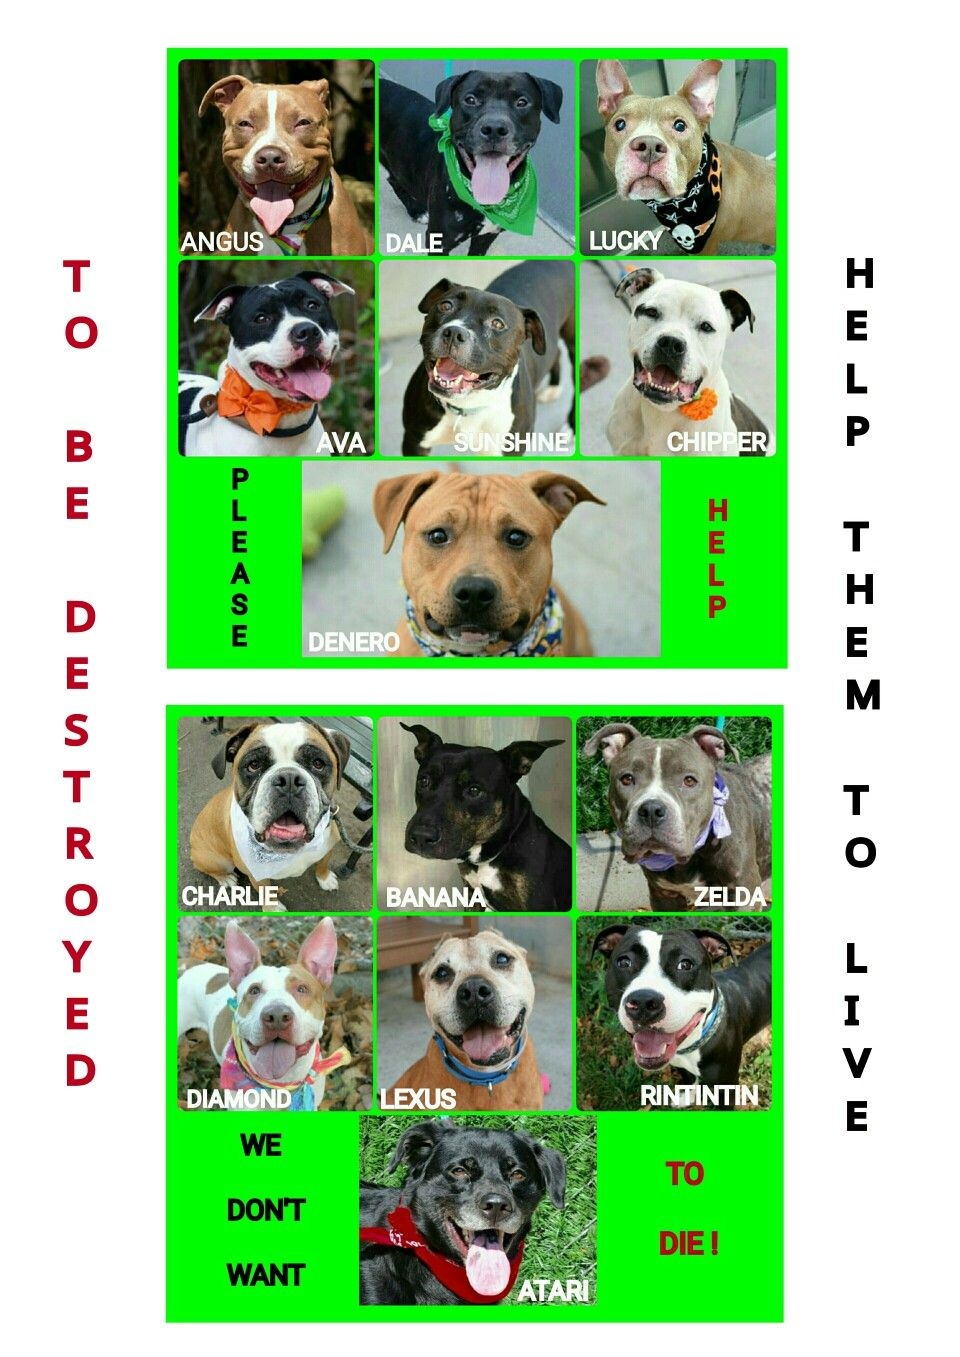 THE KILL LIST FOR SATURDAY 92416🐶🐶🐶 14 LIVES COULD END